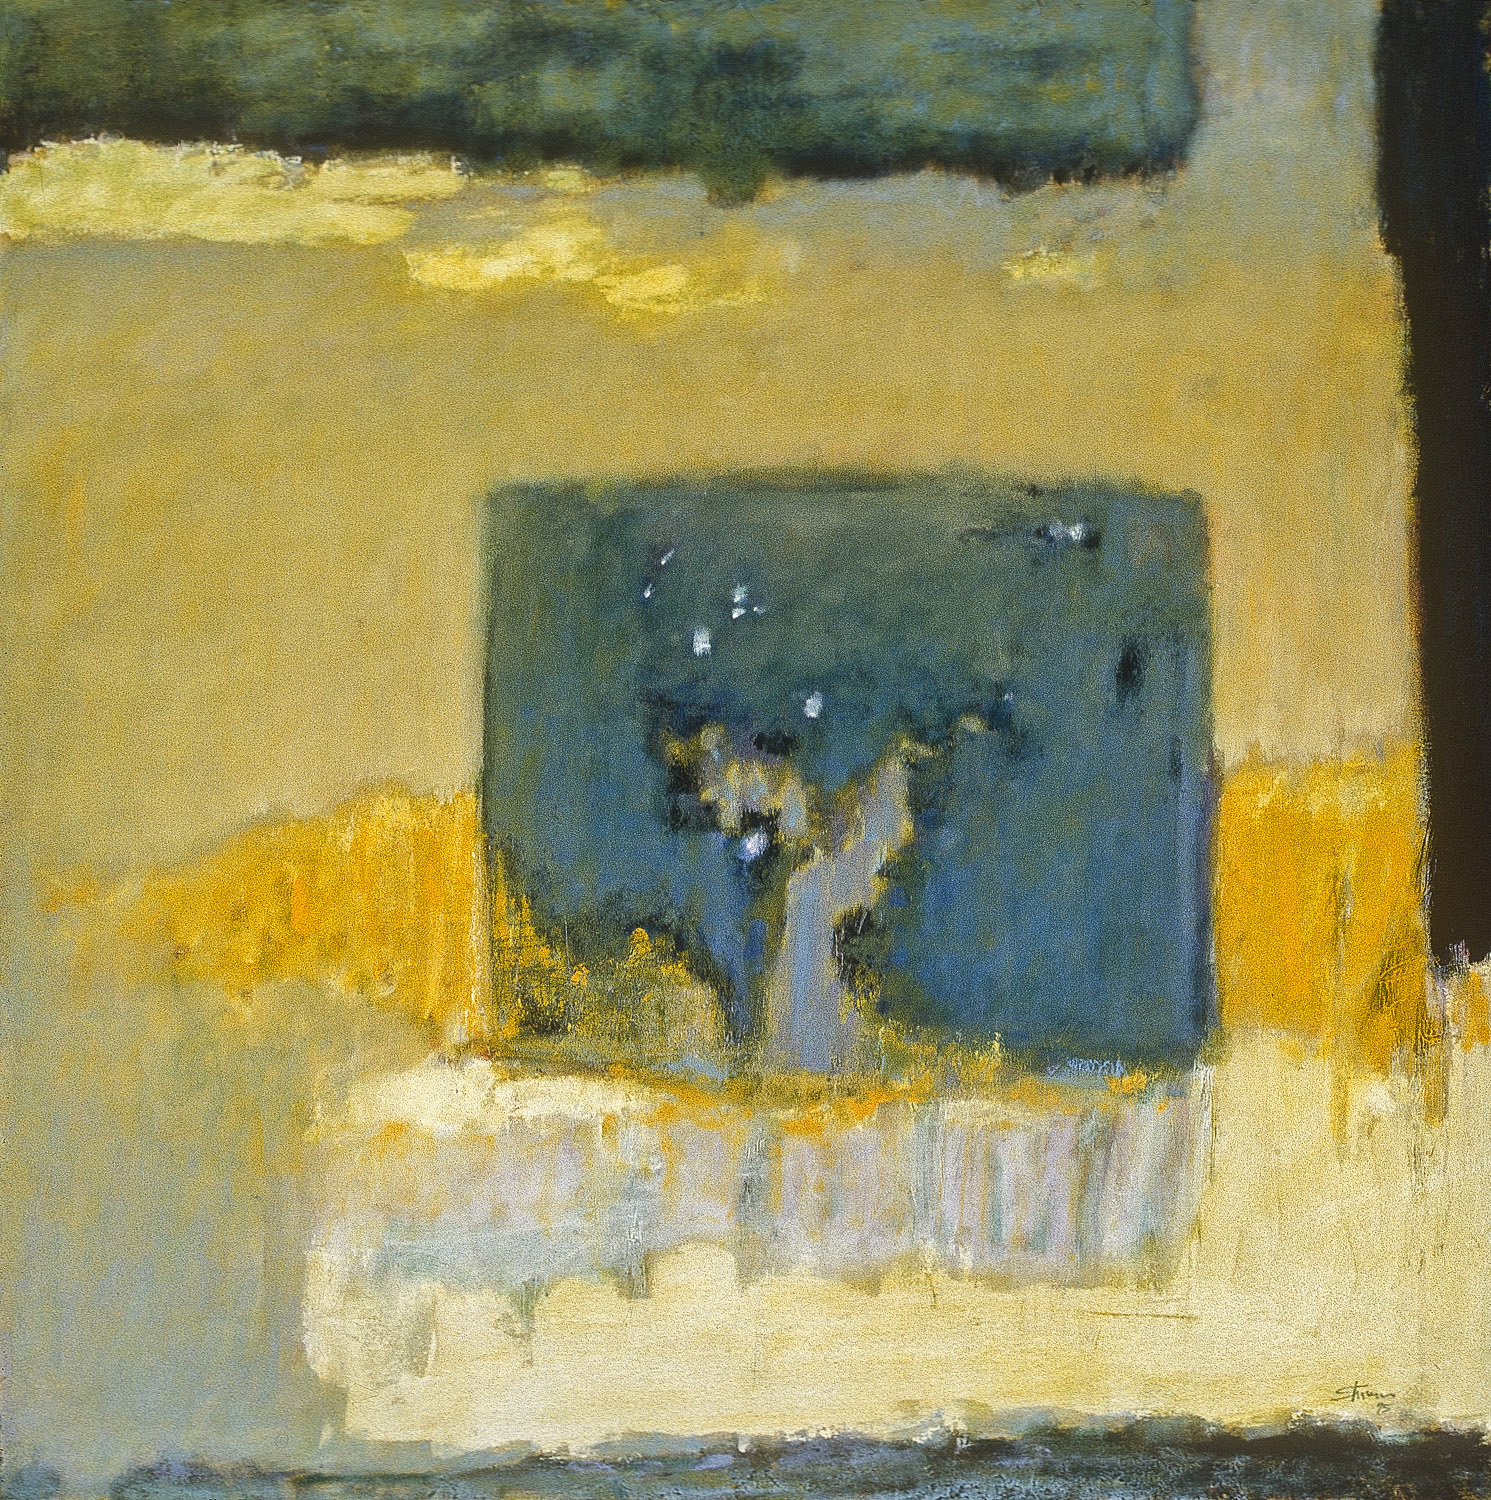 Silence Born   | oil on canvas | 36 x 36"